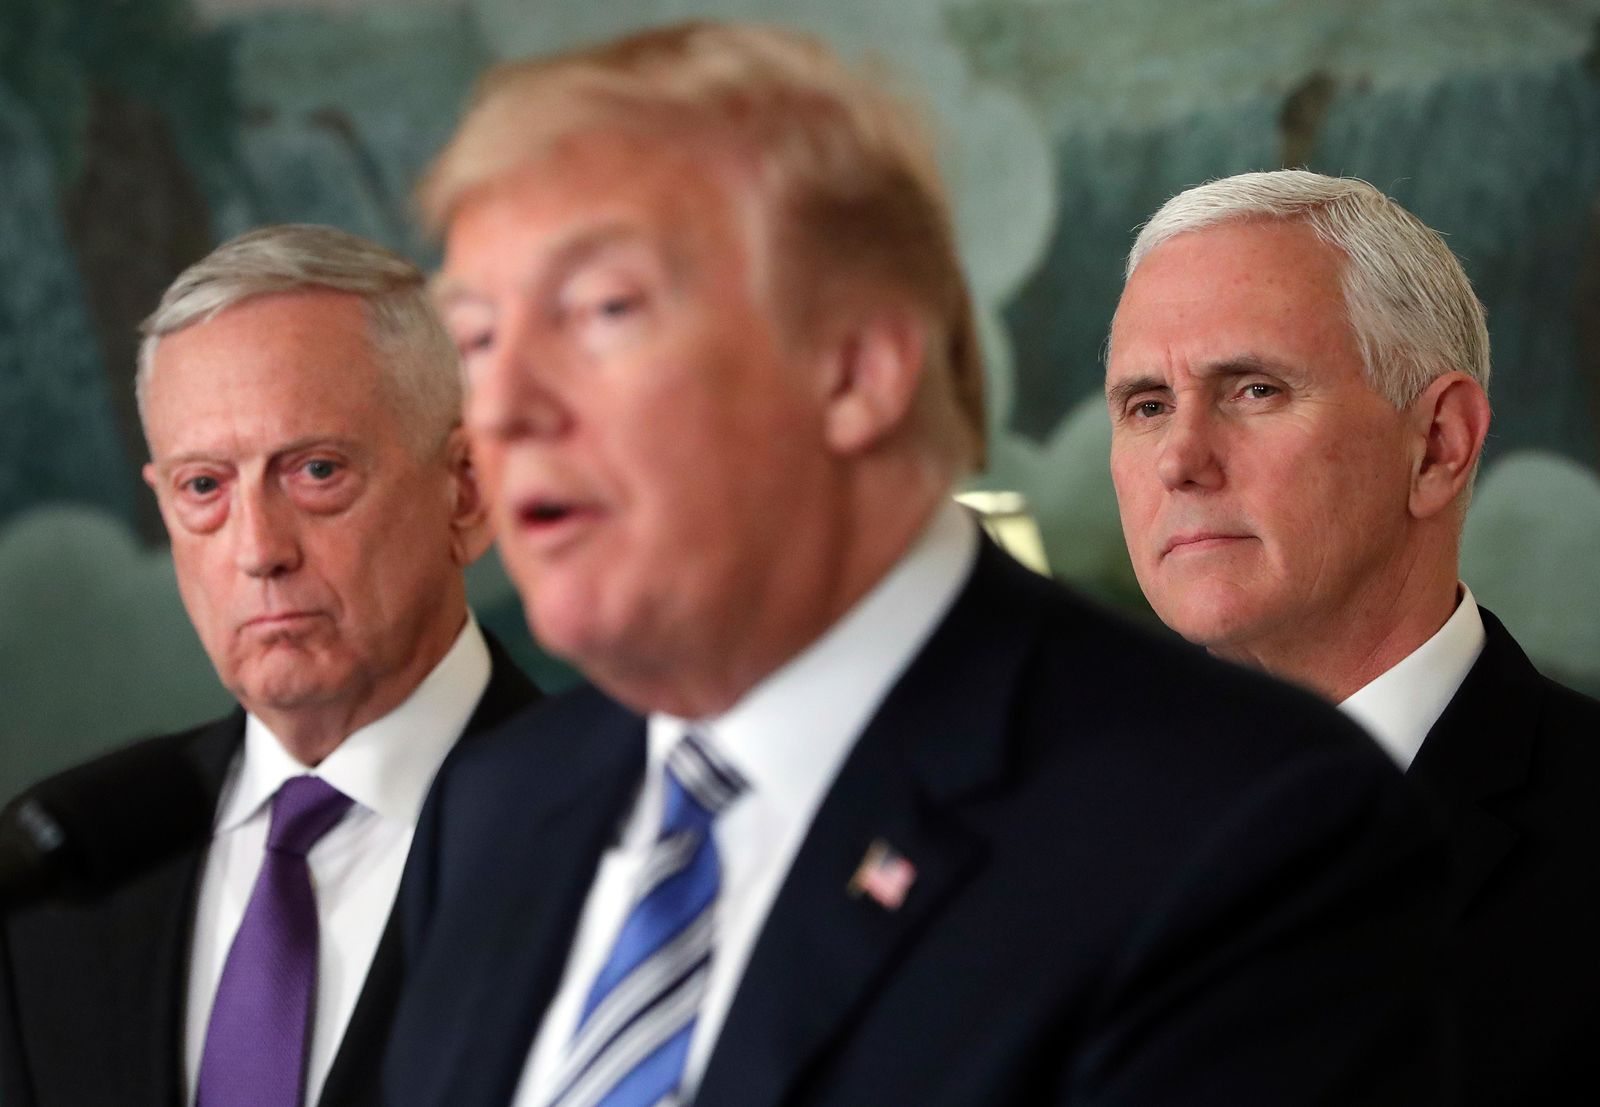 FILE - In this March 23, 2018 file photo, Defense Secretary Jim Mattis, left, and Vice President Mike Pence, right, listen to President Donald Trump, center, speaks in the Diplomatic Room of the White House in Washington.{ } (AP Photo/Pablo Martinez Monsivais)